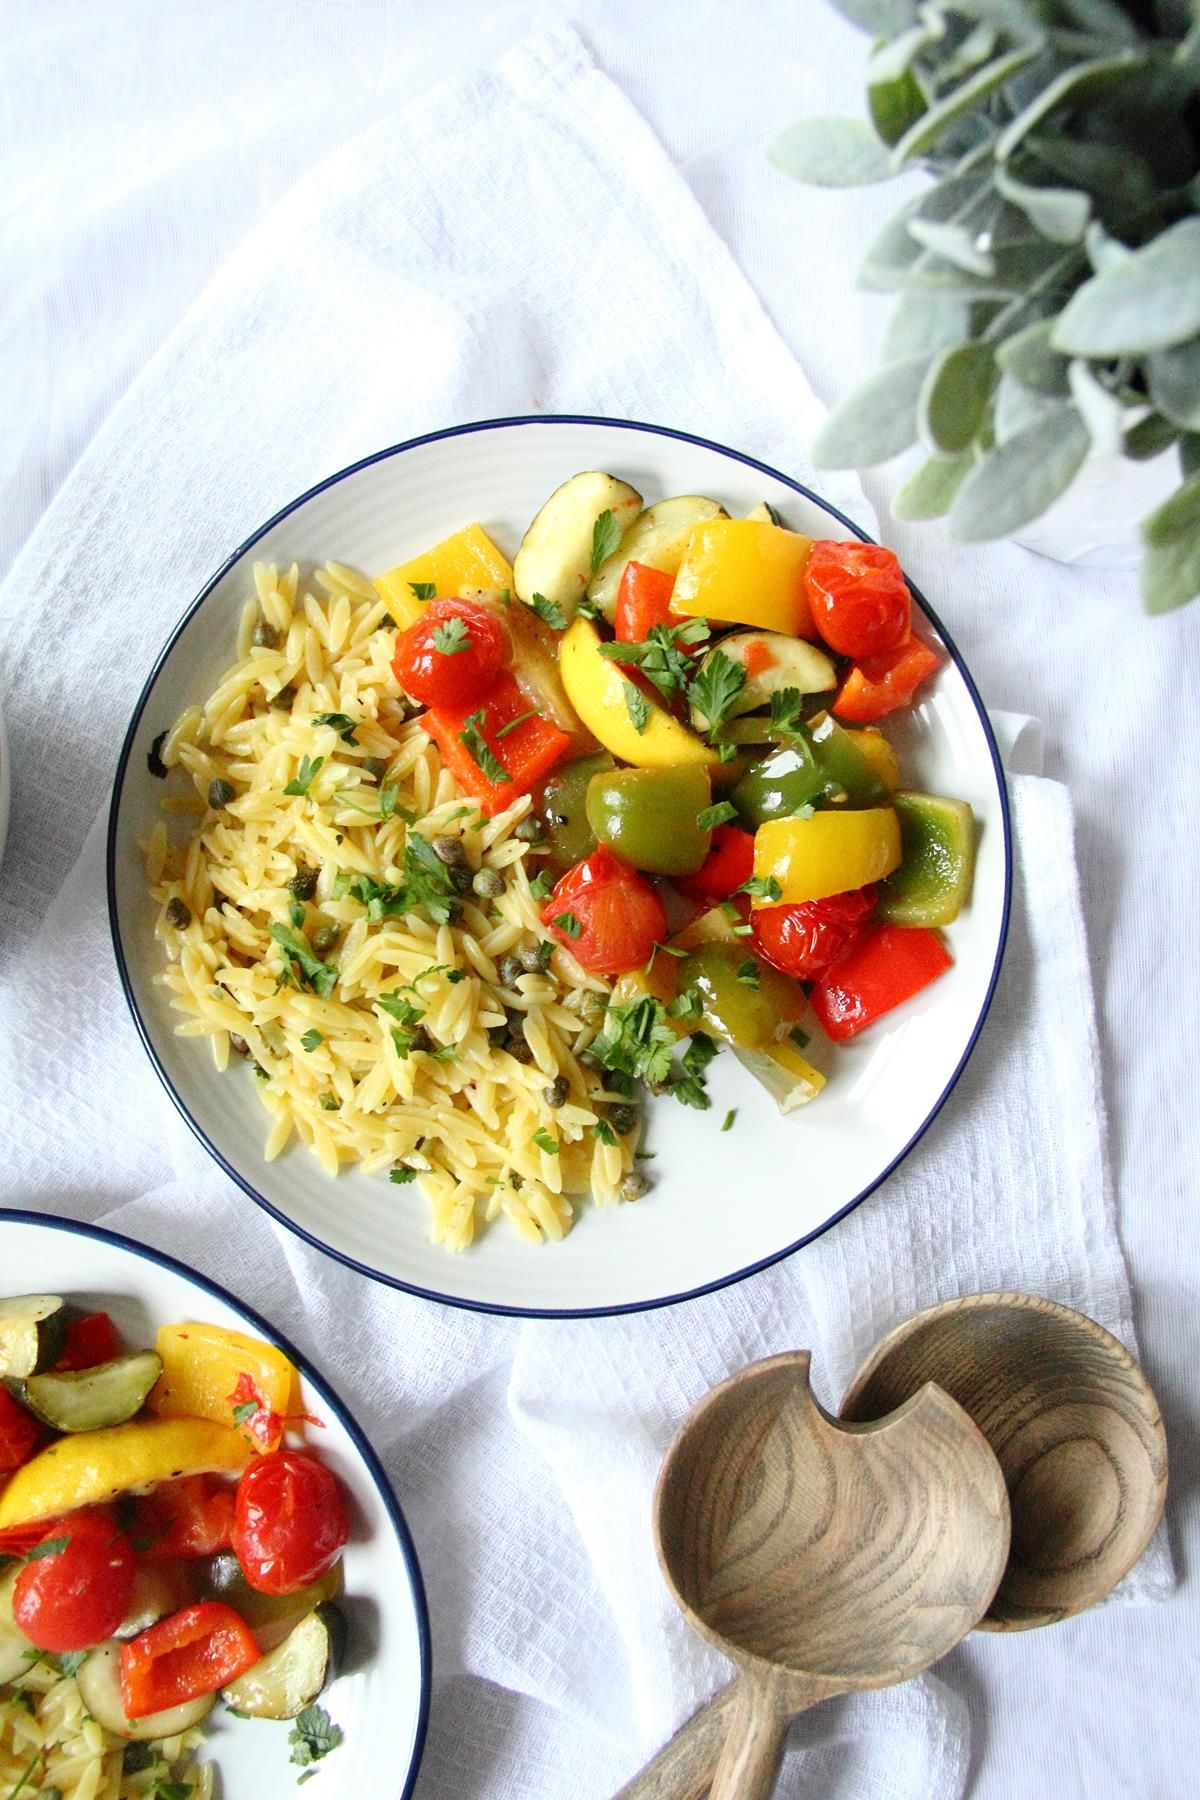 30 Minute Lemon Roasted Vegetables And Orzo Pasta Traybake Vegan